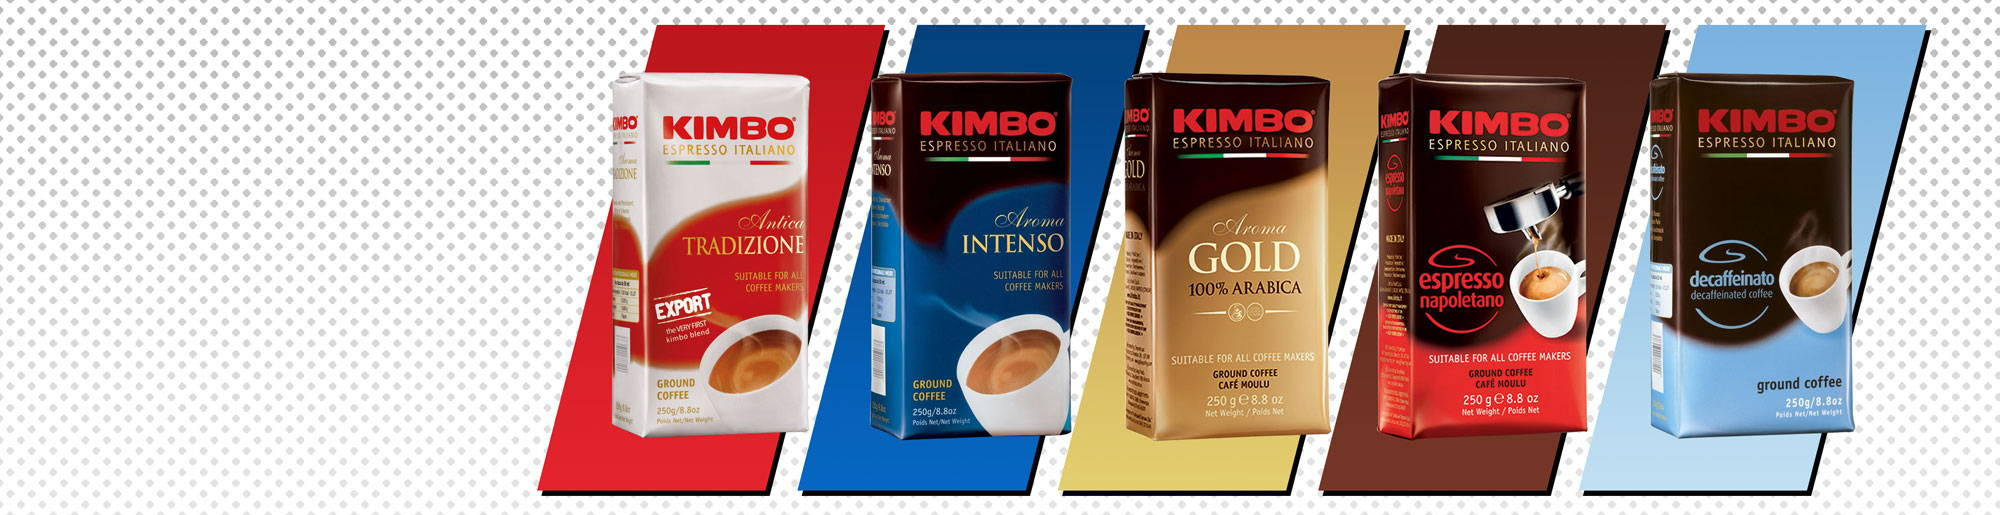 Full Kimbo Coffee Ground Range